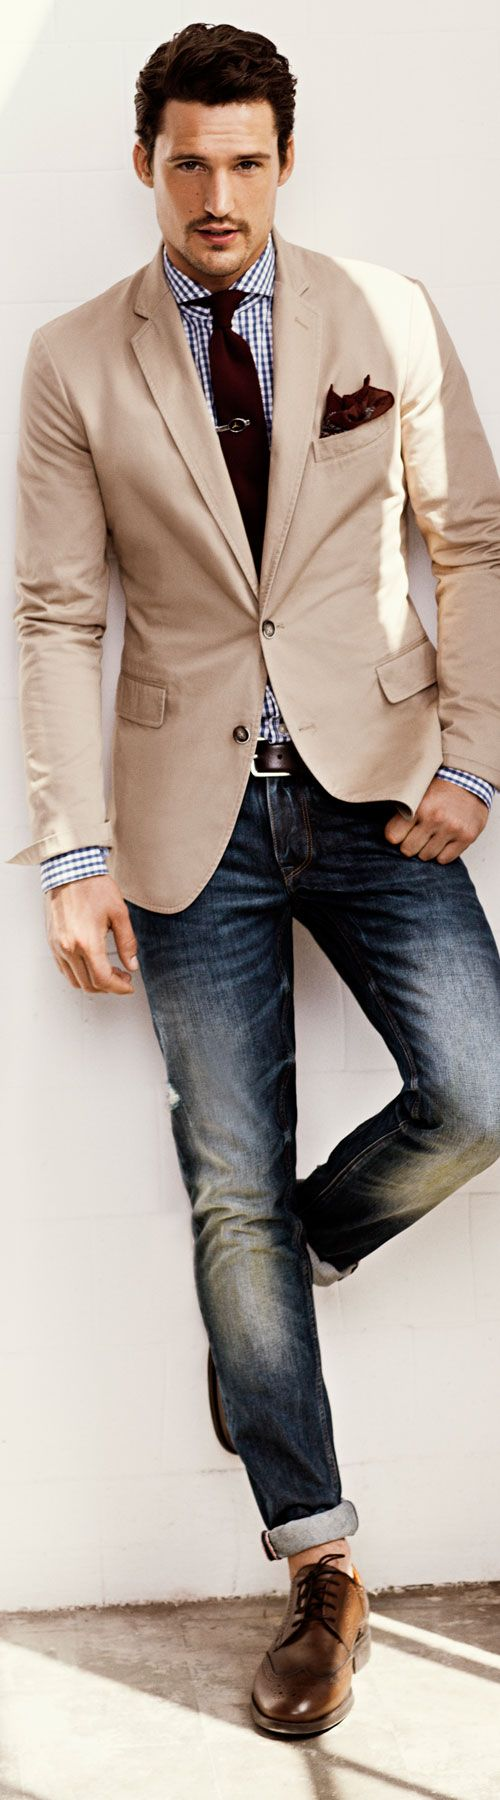 38 stylish men looks with jeans suitable for work - styleoholic